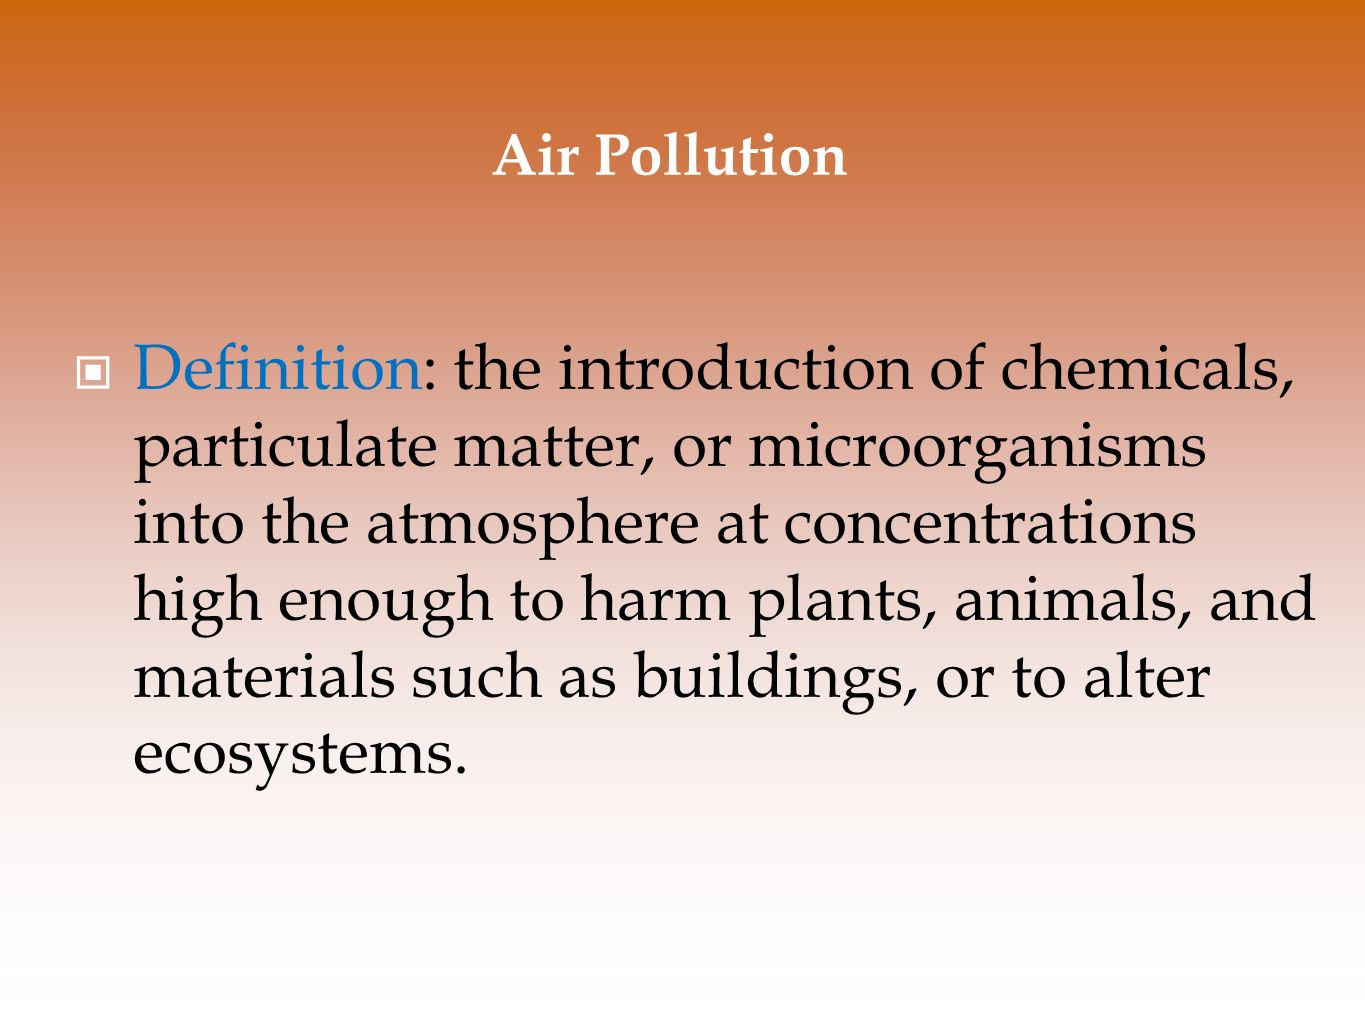 chapter 15 air pollution and stratospheric ozone depletion. - ppt